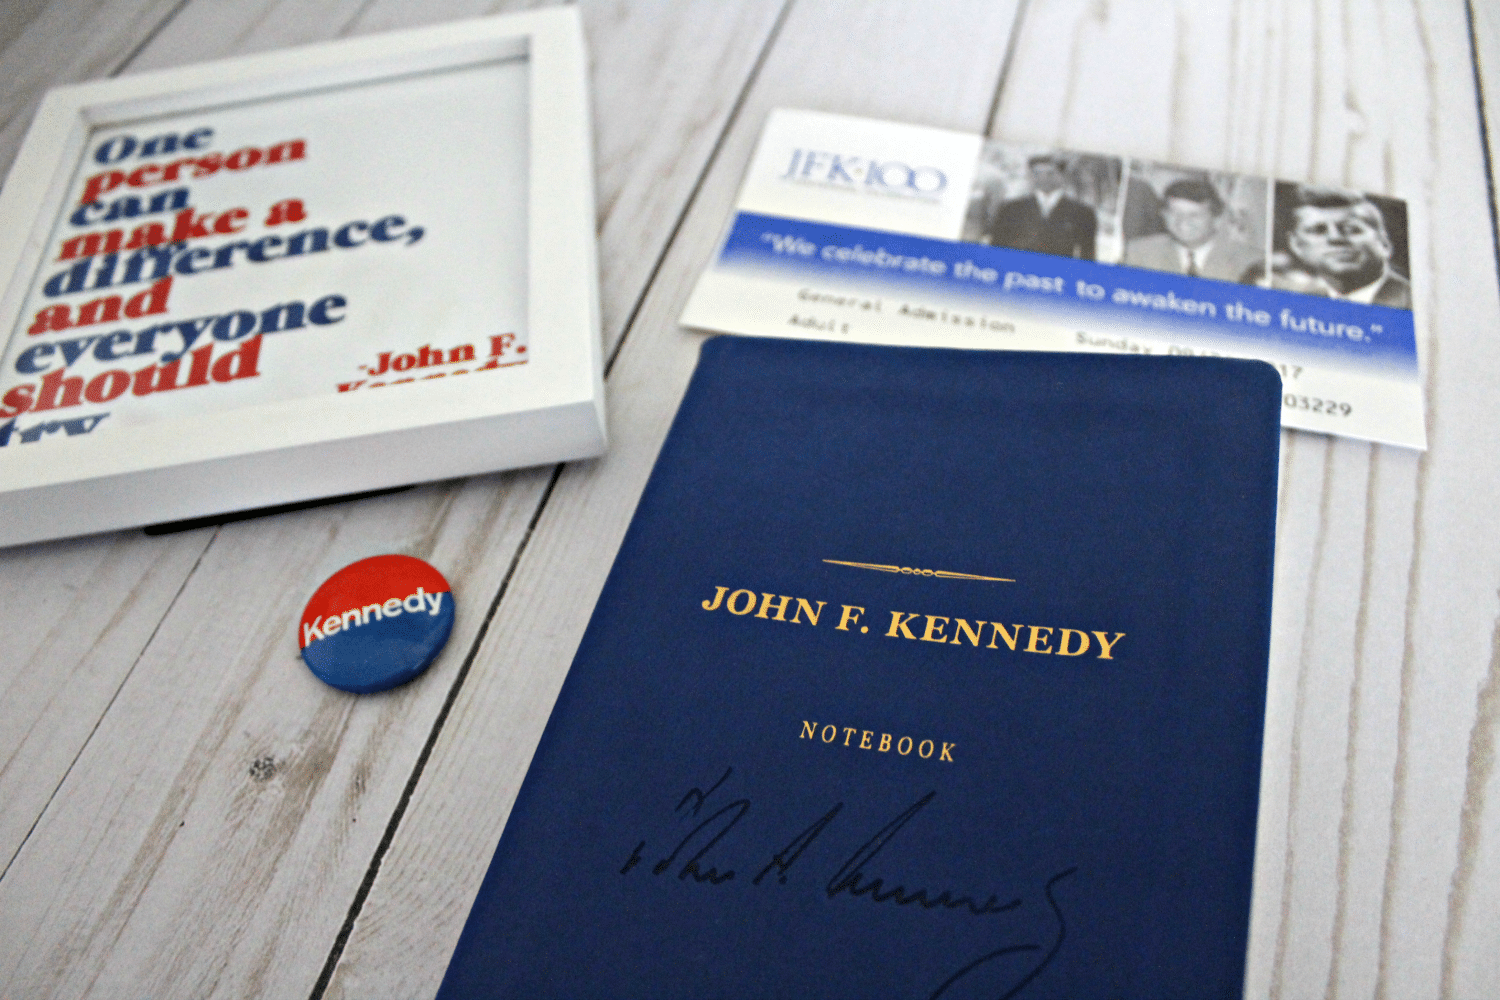 7 Inspiring JFK Quotes to Help Inspire You While at Work